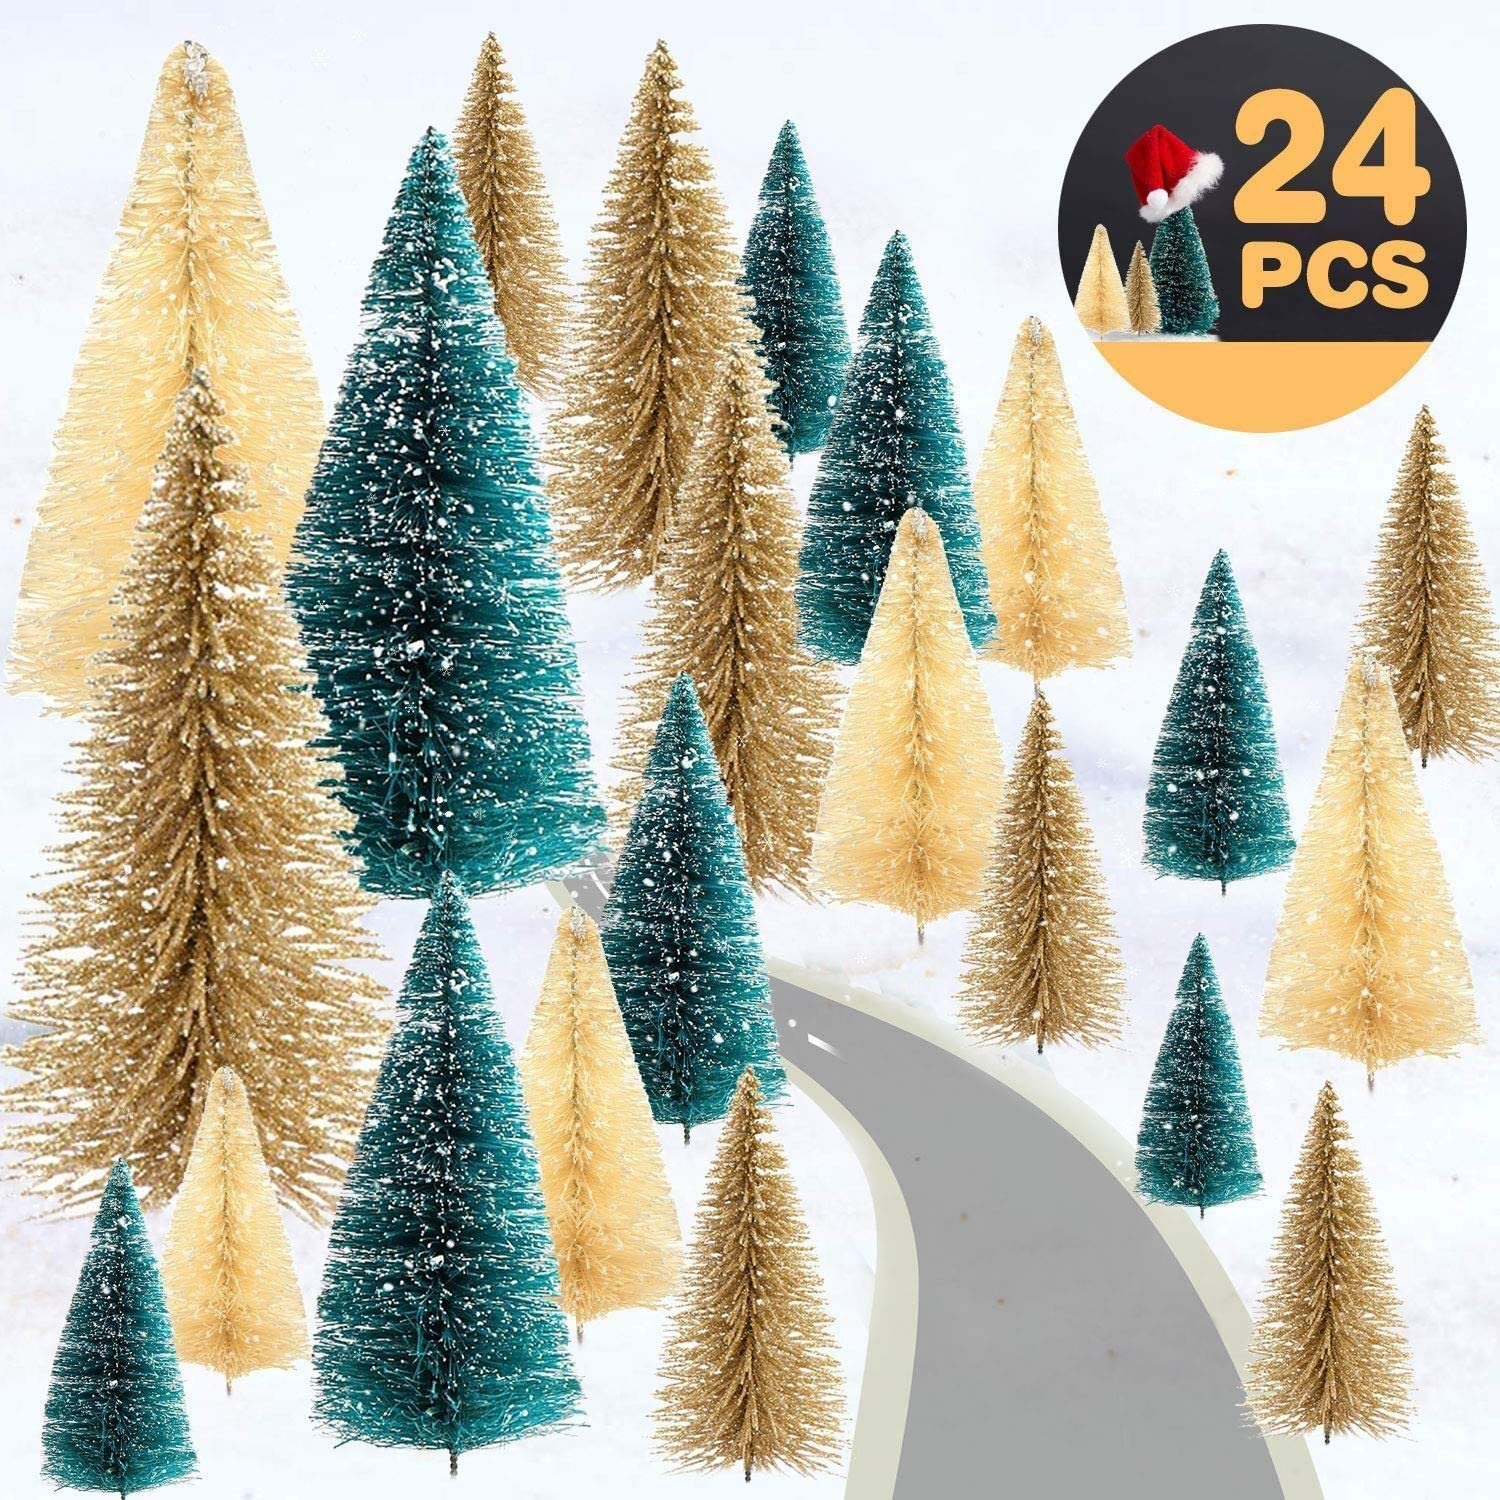 TOPLEE 24 Piece Mini Christmas Trees, Artificial Frosted Sisal Christmas Tree with Wooden Base DIY Crafts Mini Pine Tree for Christmas Party Home Table Top Decor Winter Ornaments